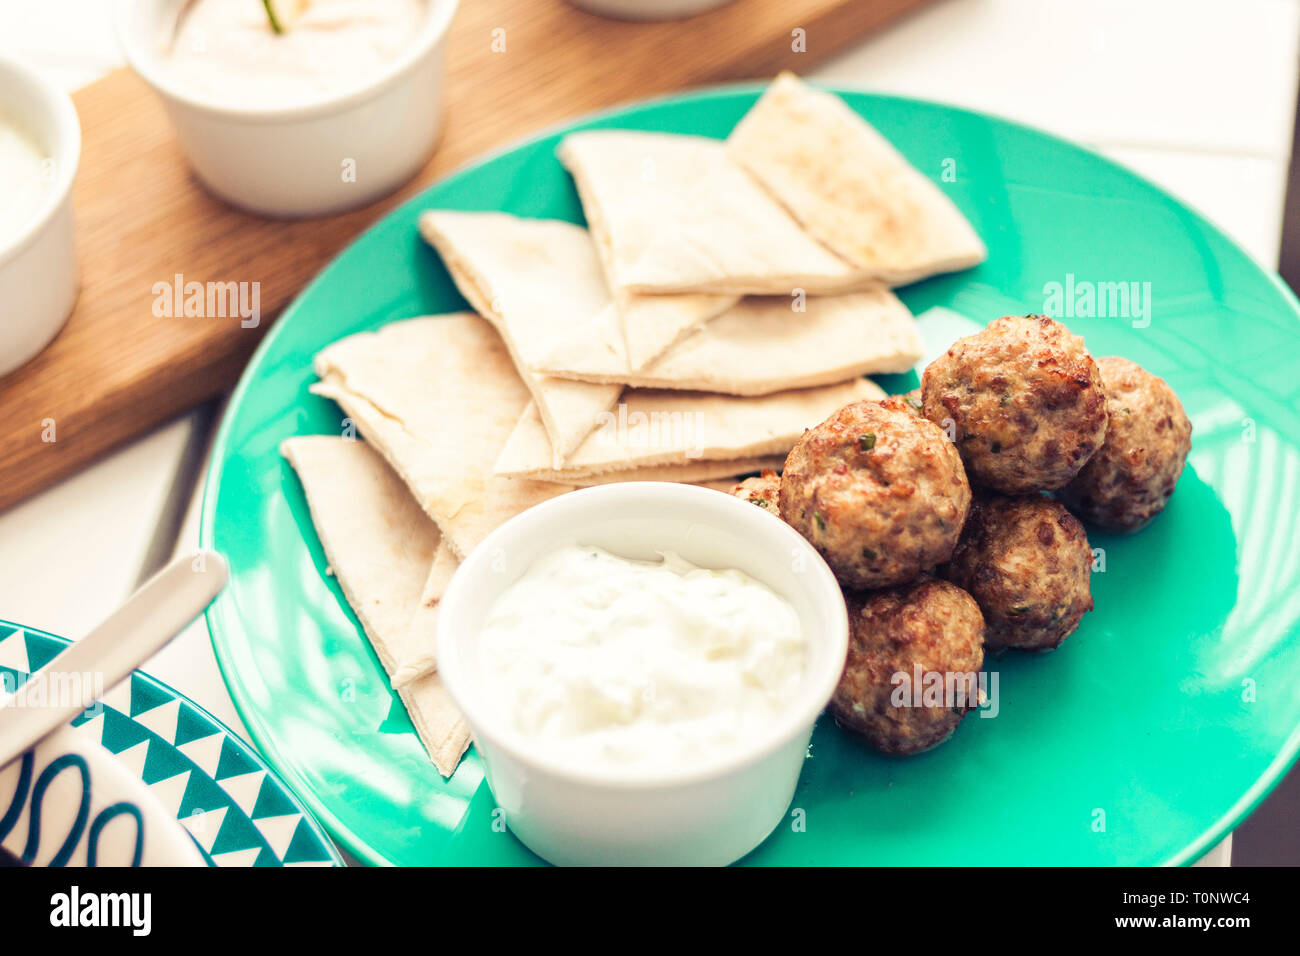 Fried minced meat with sauce and tortillas, traditional Greek lunch on a green plate in a restaurant - Stock Image